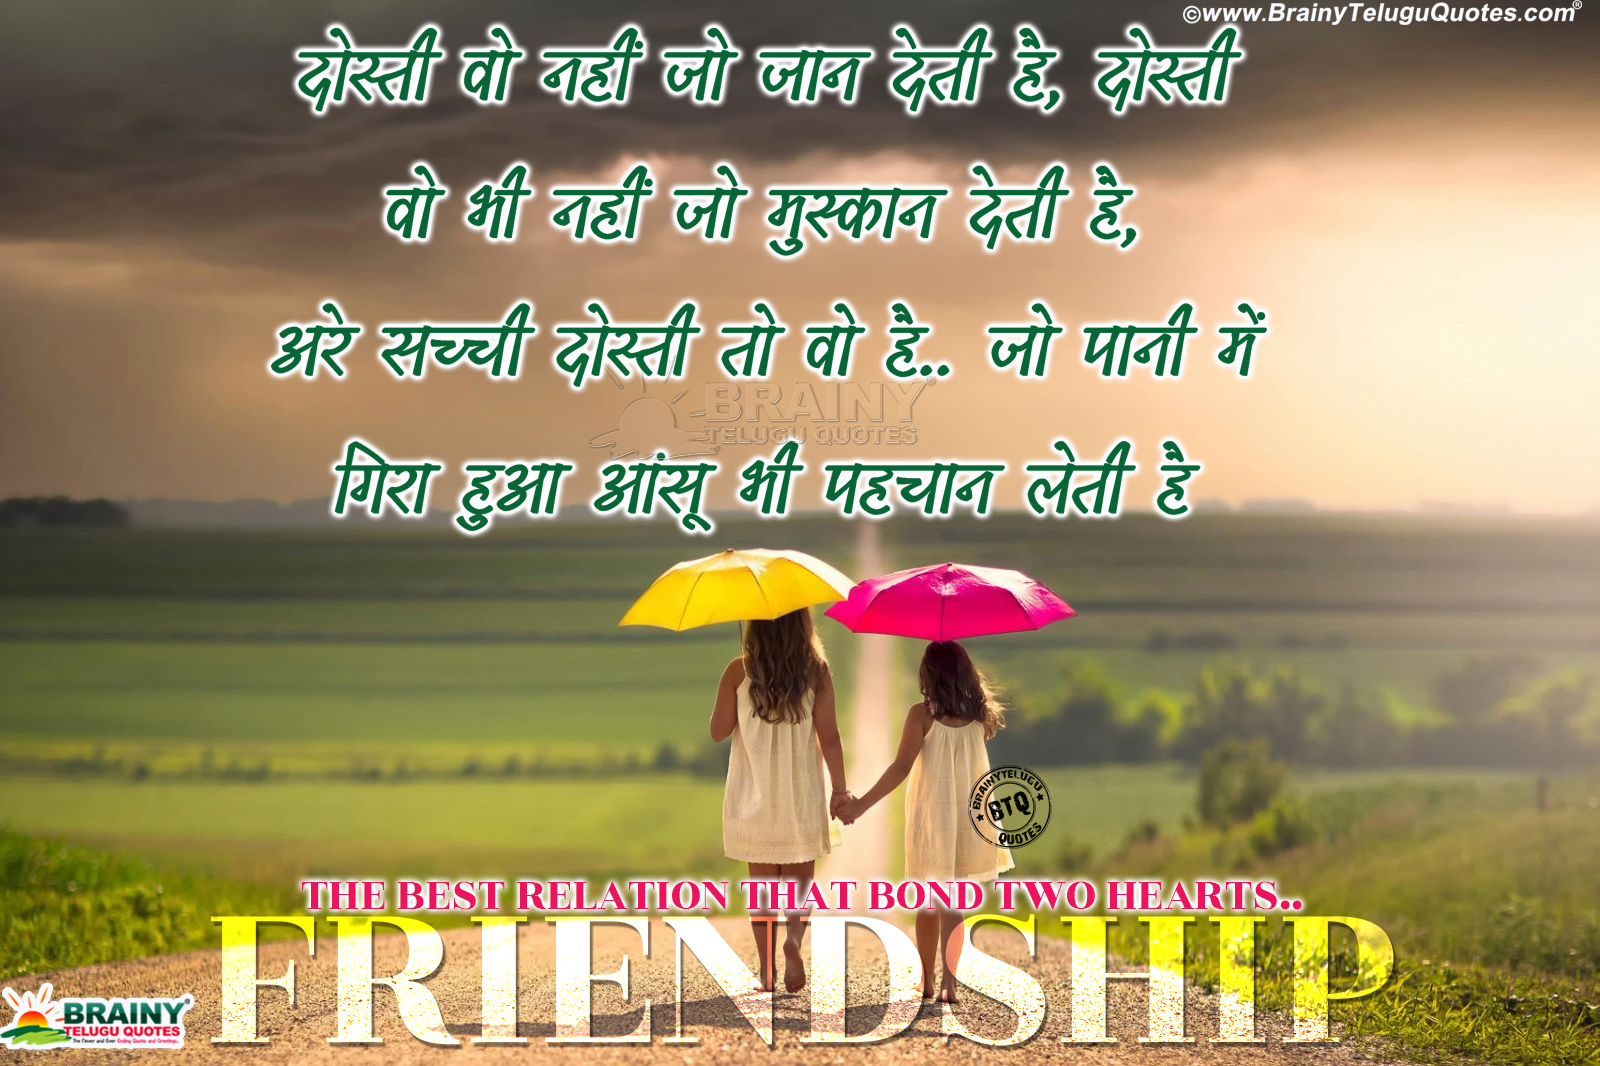 Quotes About Friendship Pictures Heart Touching Friendship Quotes Hd Wallpapers In Hindi